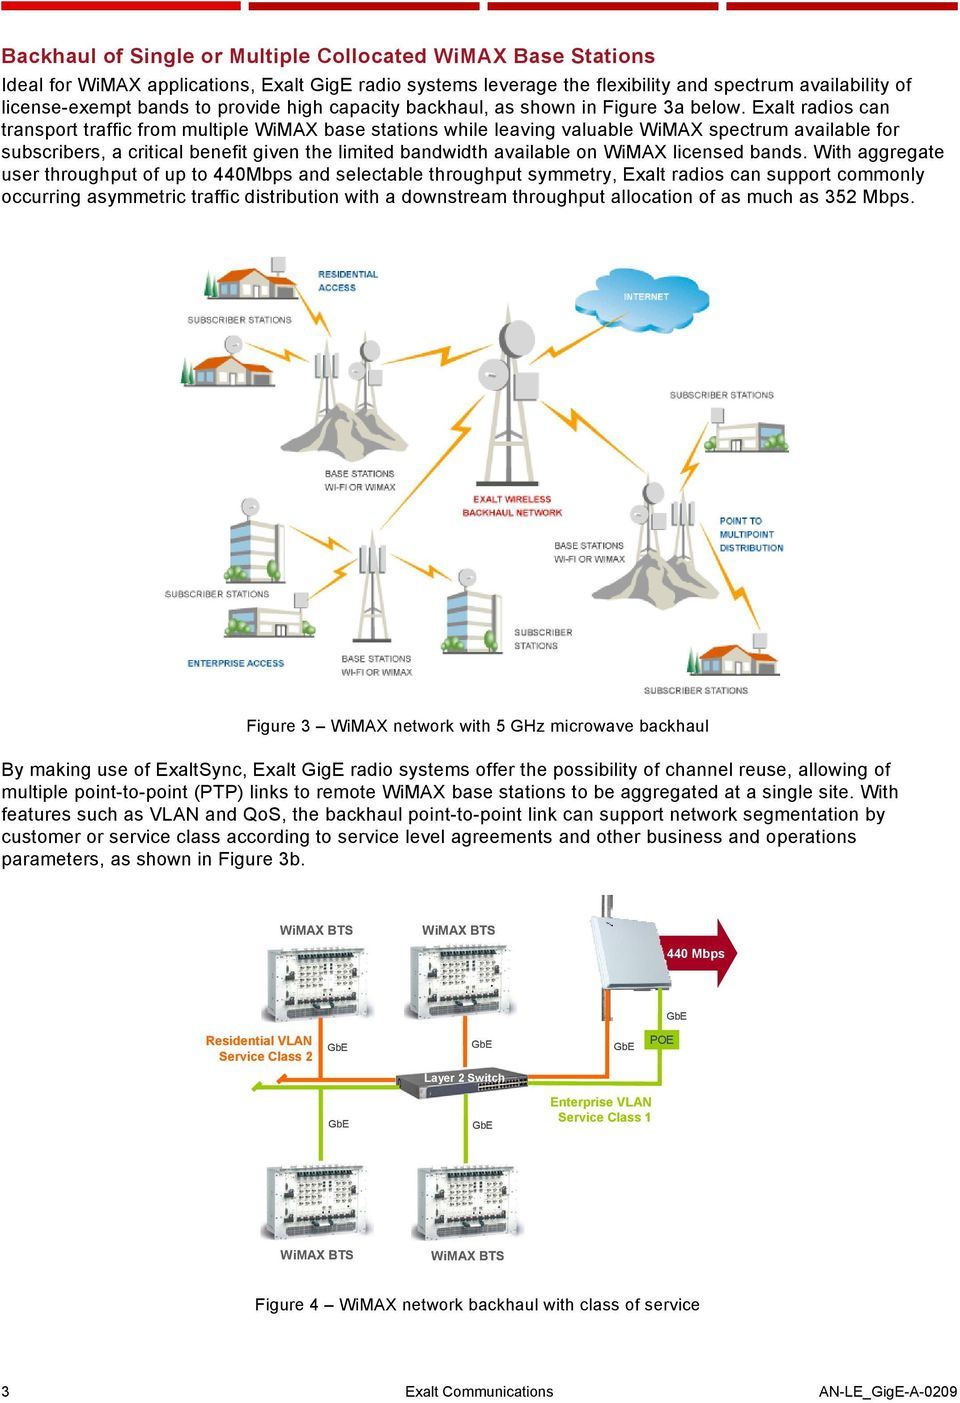 Exalt radios can transport traffic from multiple WiMAX base stations while leaving valuable WiMAX spectrum available for subscribers, a critical benefit given the limited bandwidth available on WiMAX